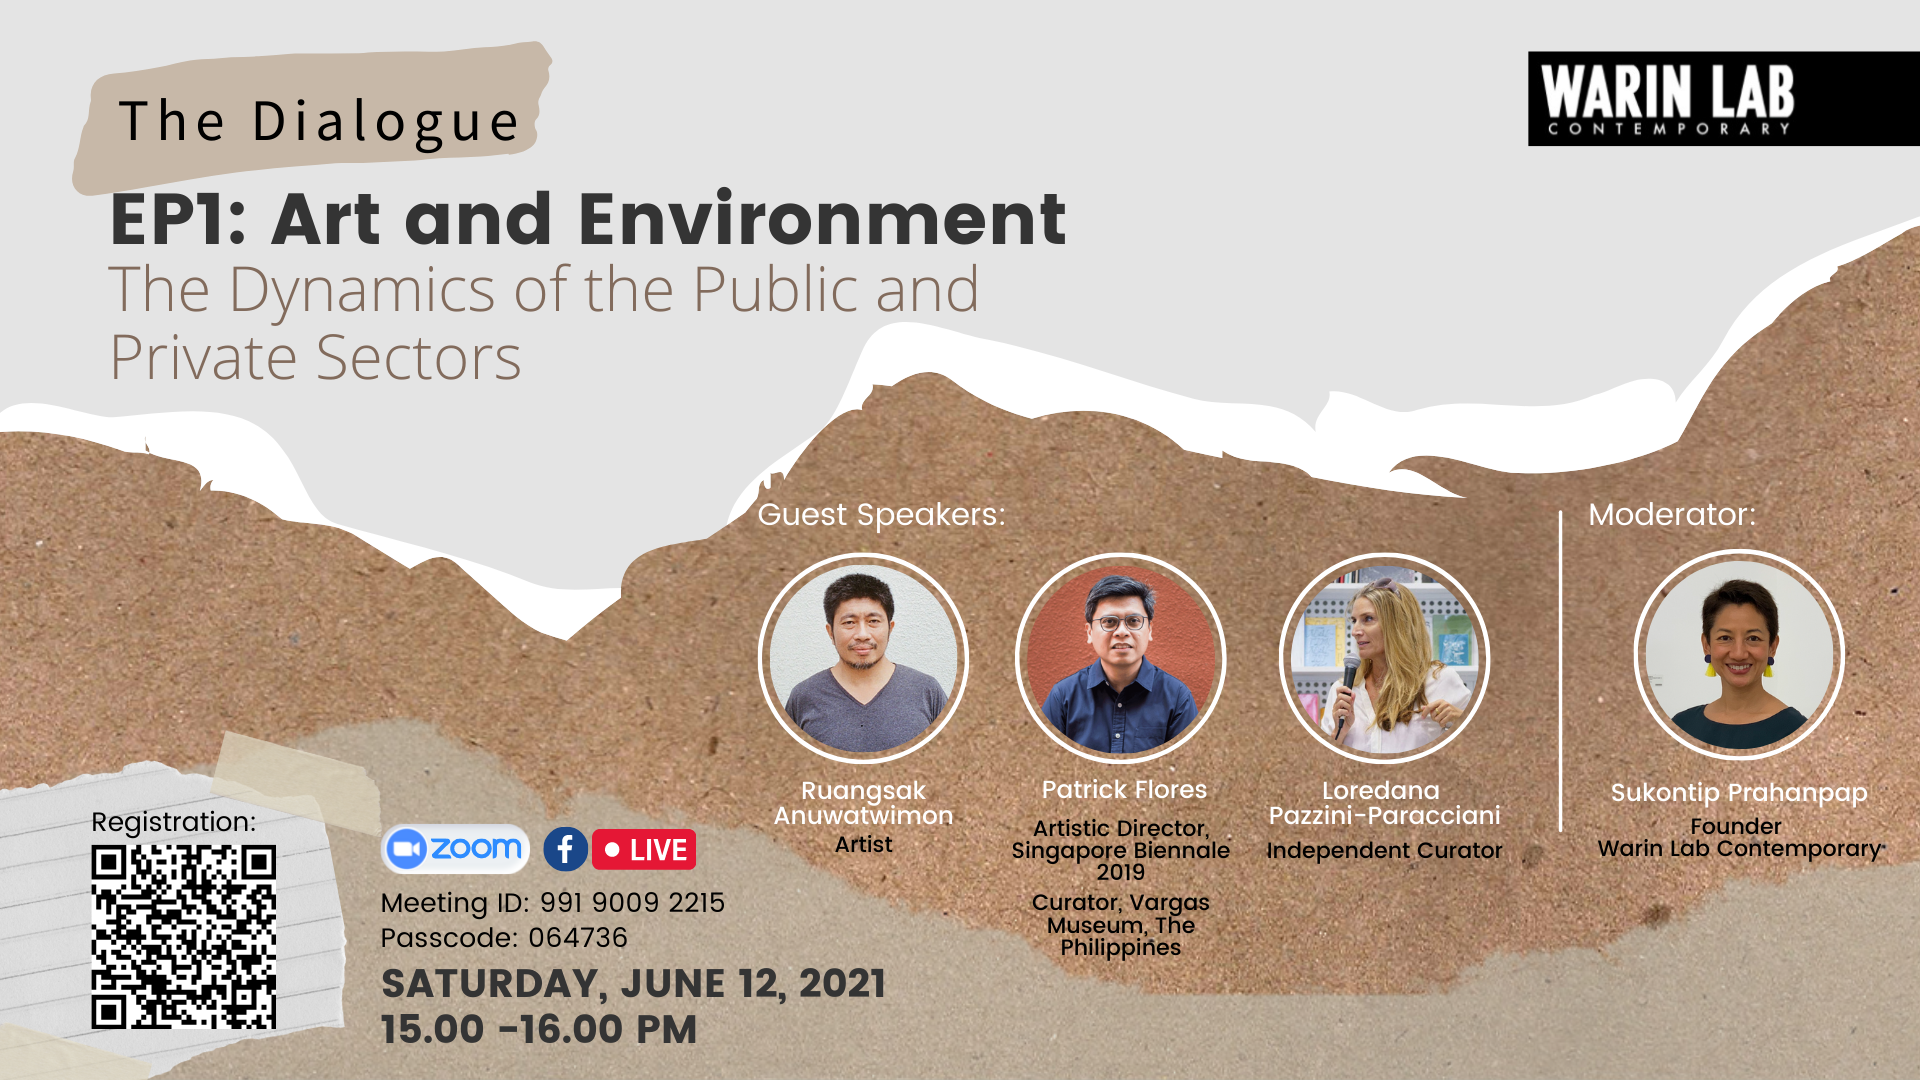 The Dialogue EP1: Art and Environment | The Dynamics of the Public and Private Sectors